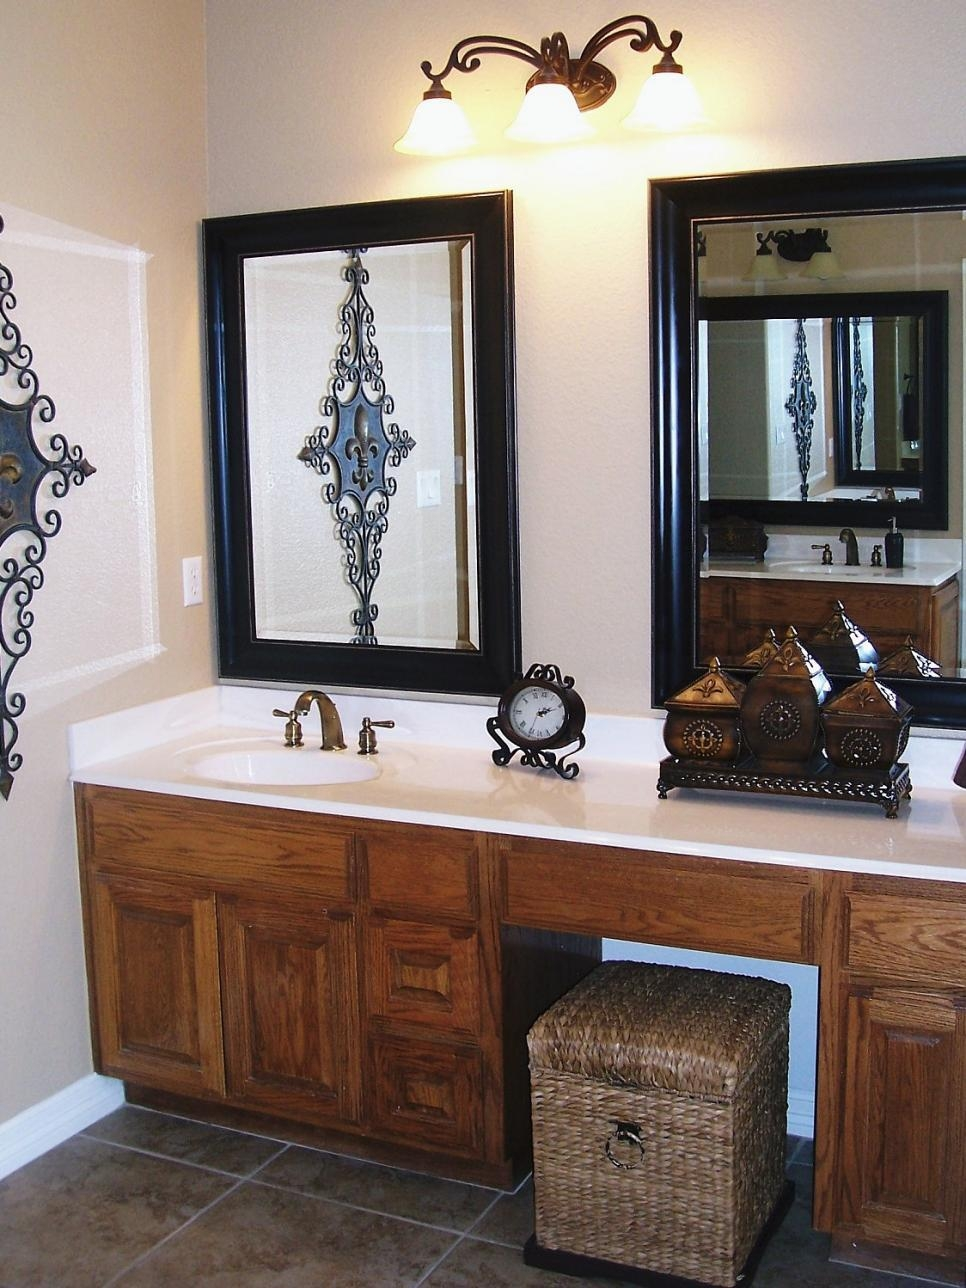 10 Beautiful Bathroom Mirrors | Hgtv Inside Decorative Mirrors For Bathroom Vanity (Image 1 of 20)